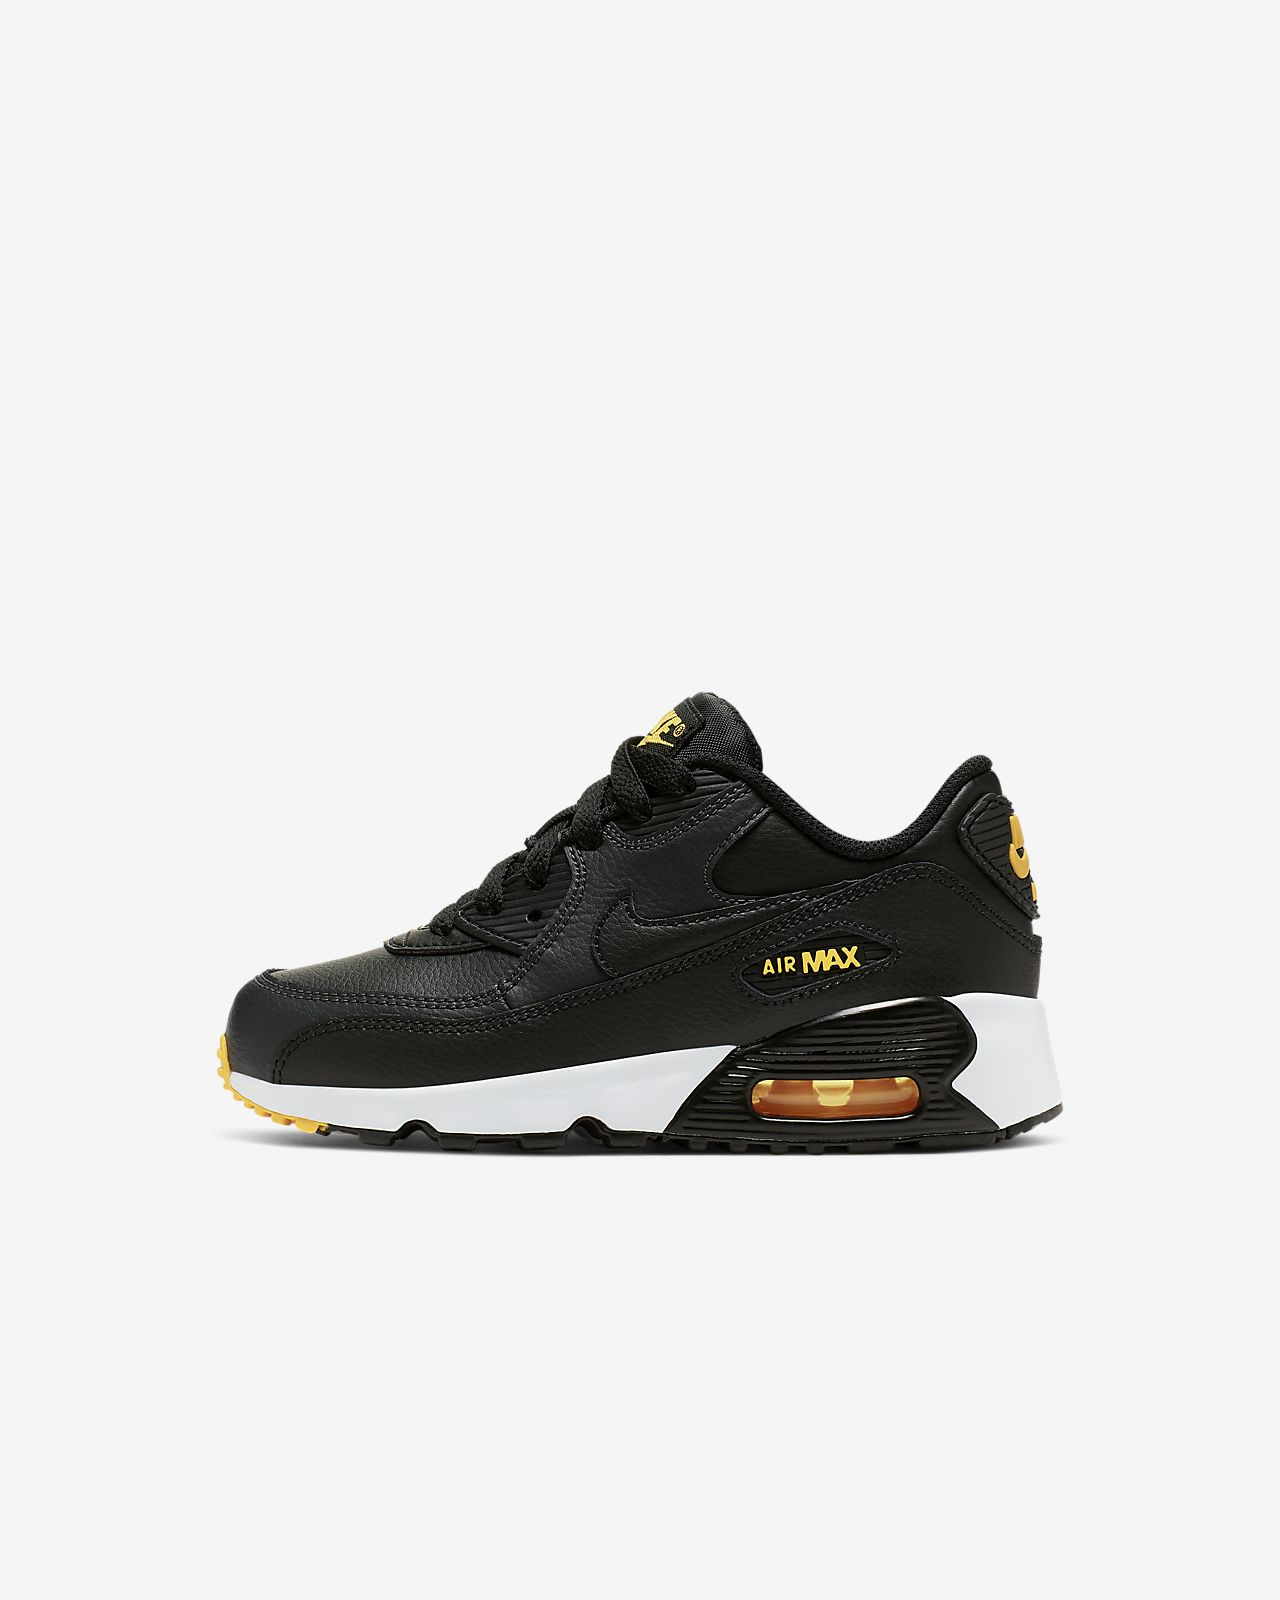 defa8ae28d Nike Air Max 90 Leather Little Kids' Shoe. Nike.com